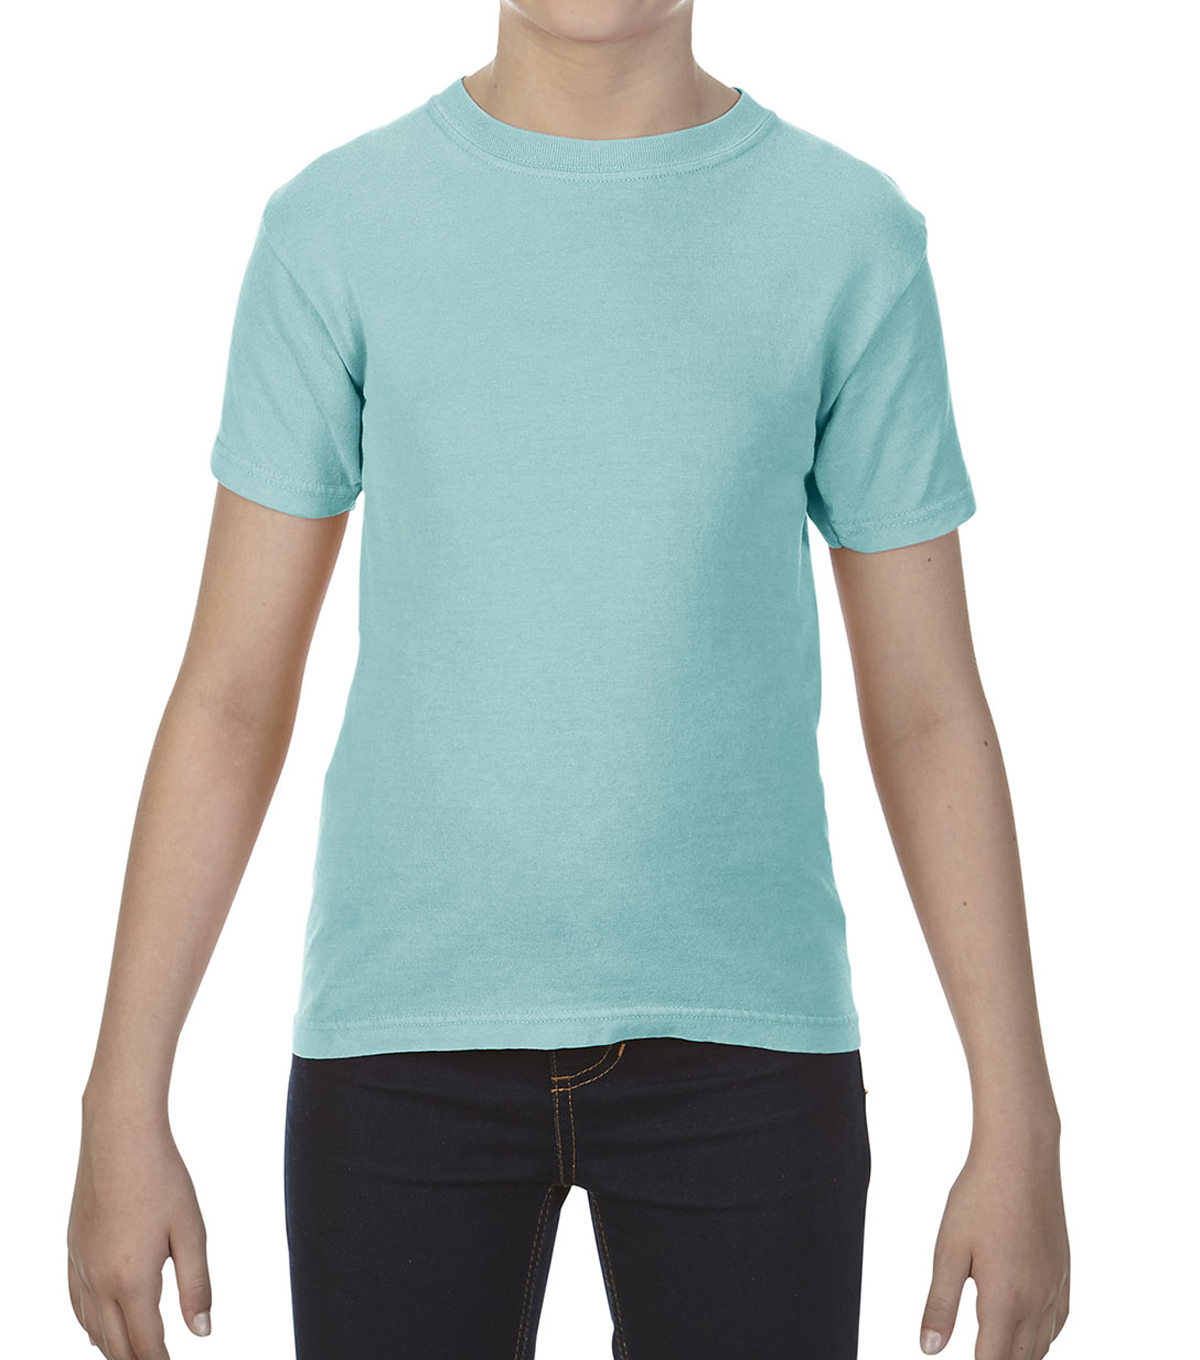 Gildan Comfort Colors 9018 Medium Youth T-Shirt, Chalky Mint